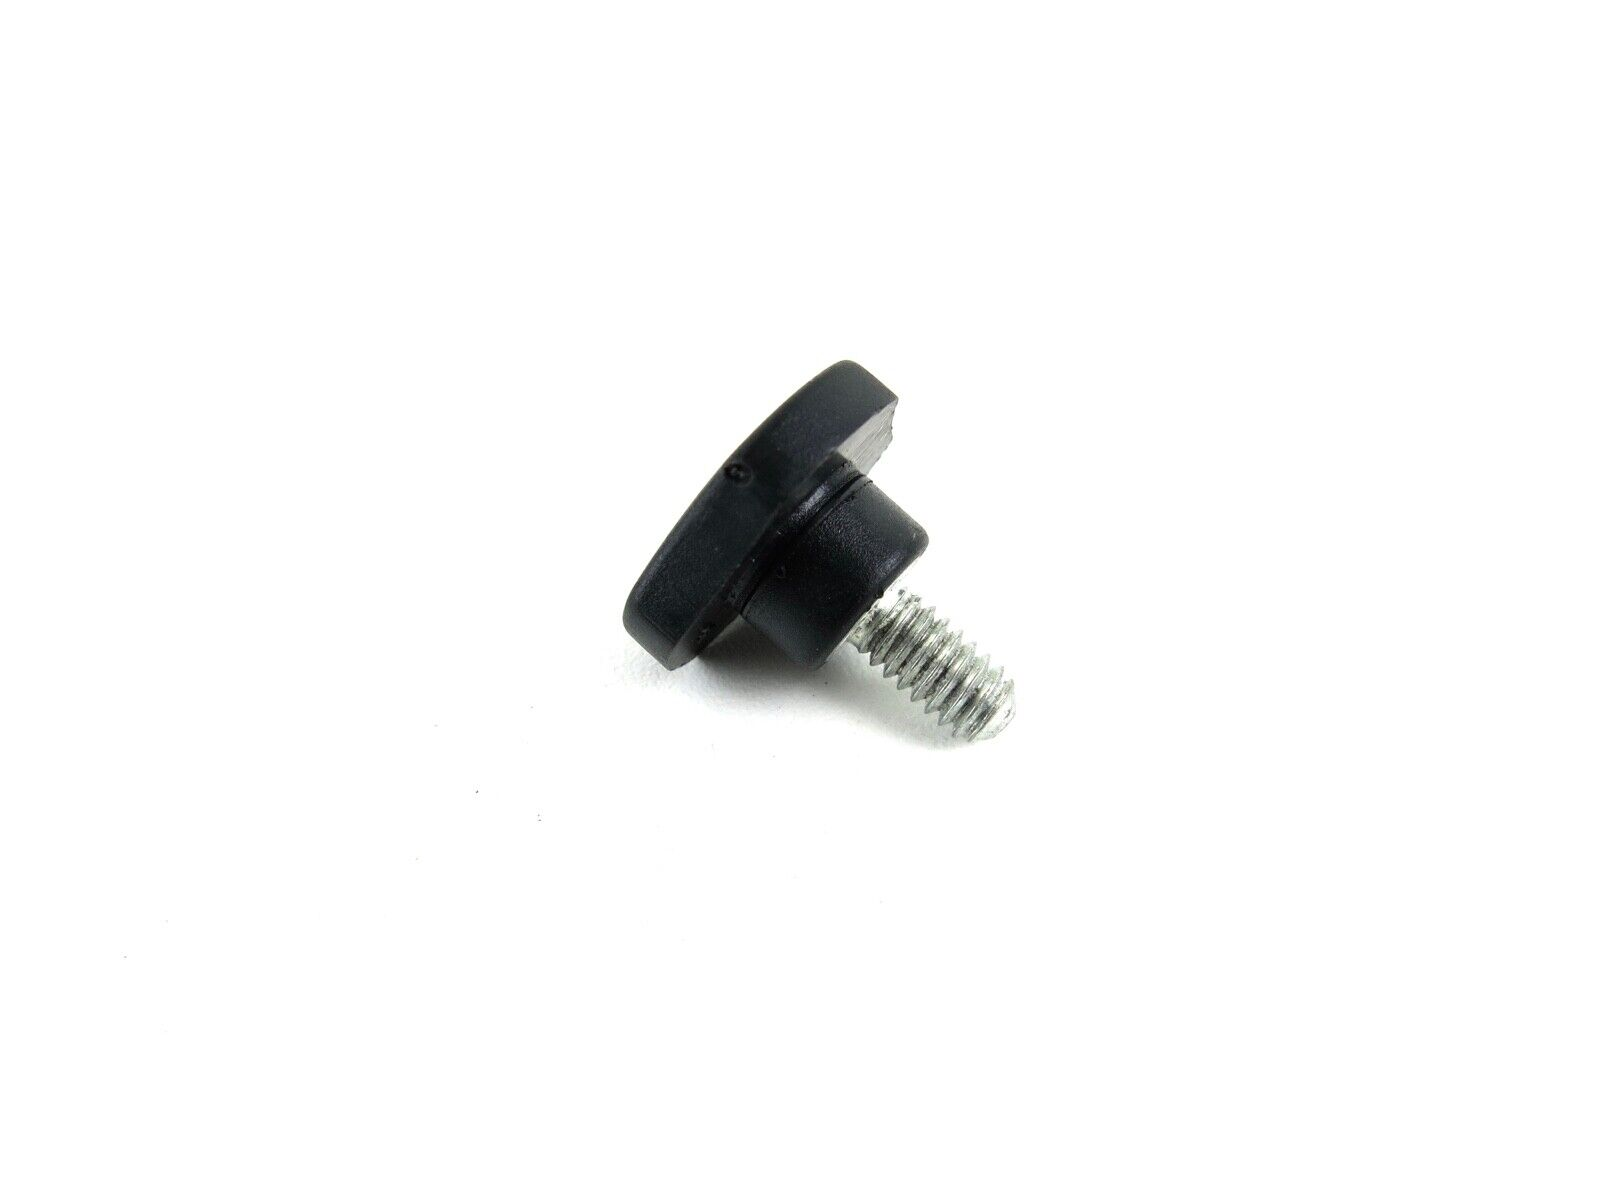 Skil 2615296242 Knob Replacement for 3330, 3333 Jig Saw / Sc